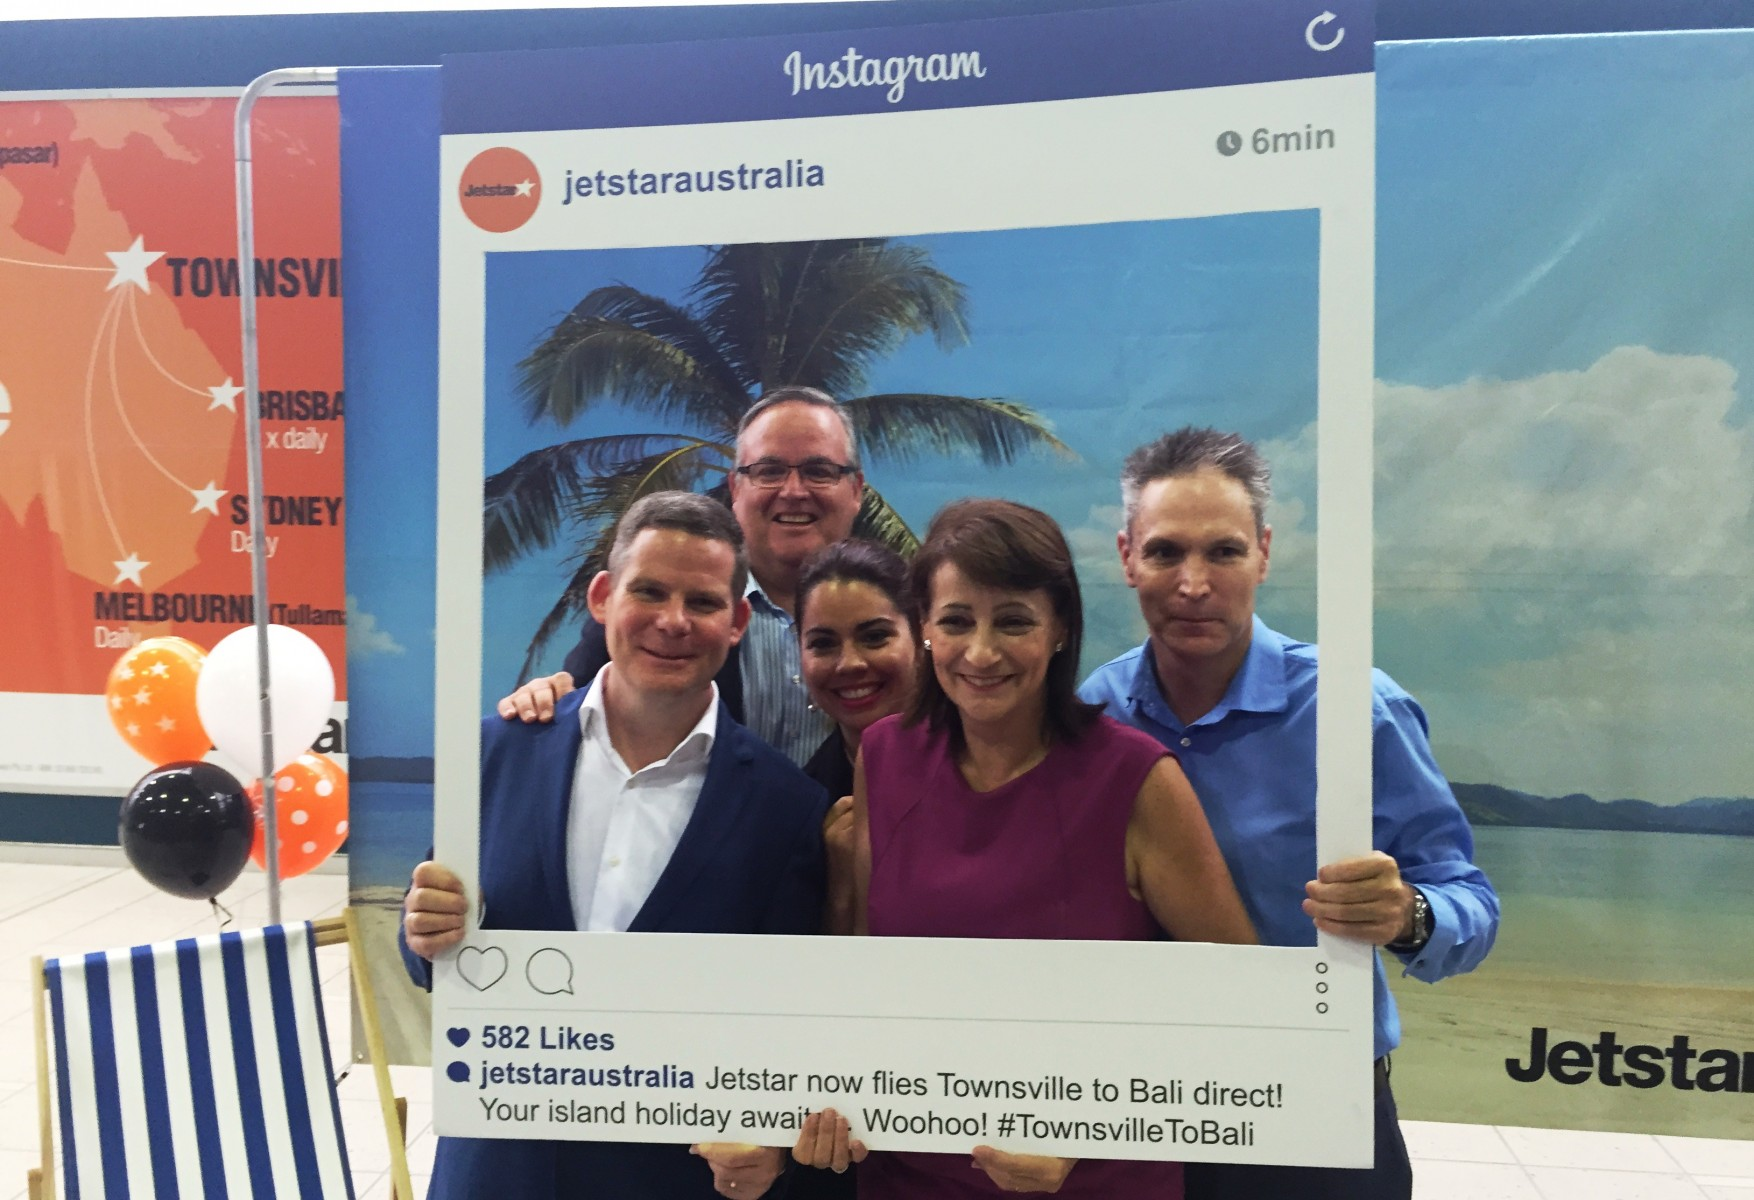 Townsville-Bali route launch - David Hall